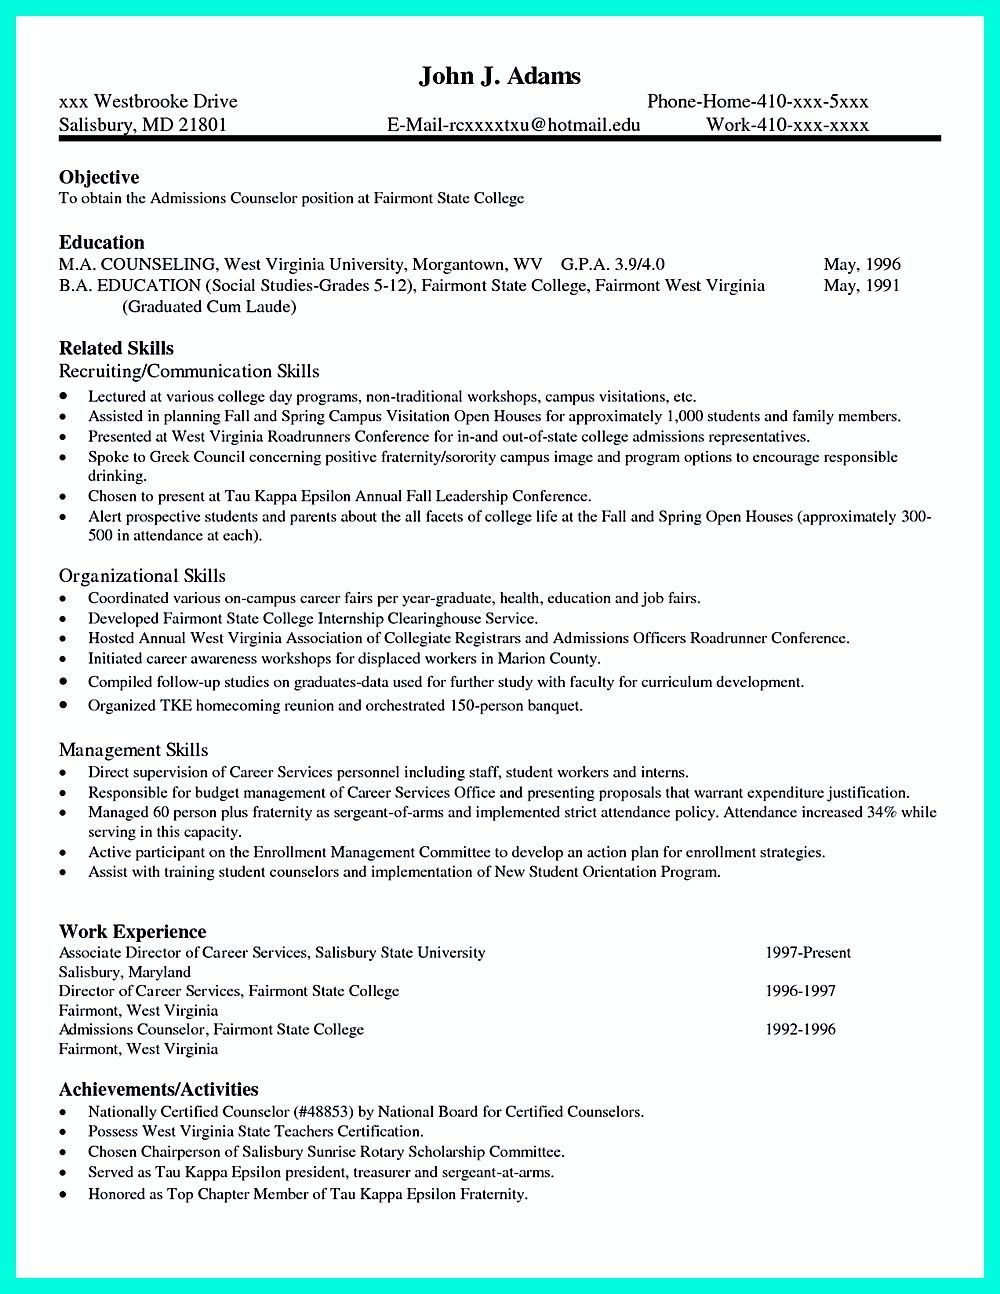 College Application Resume is very advantageous when you